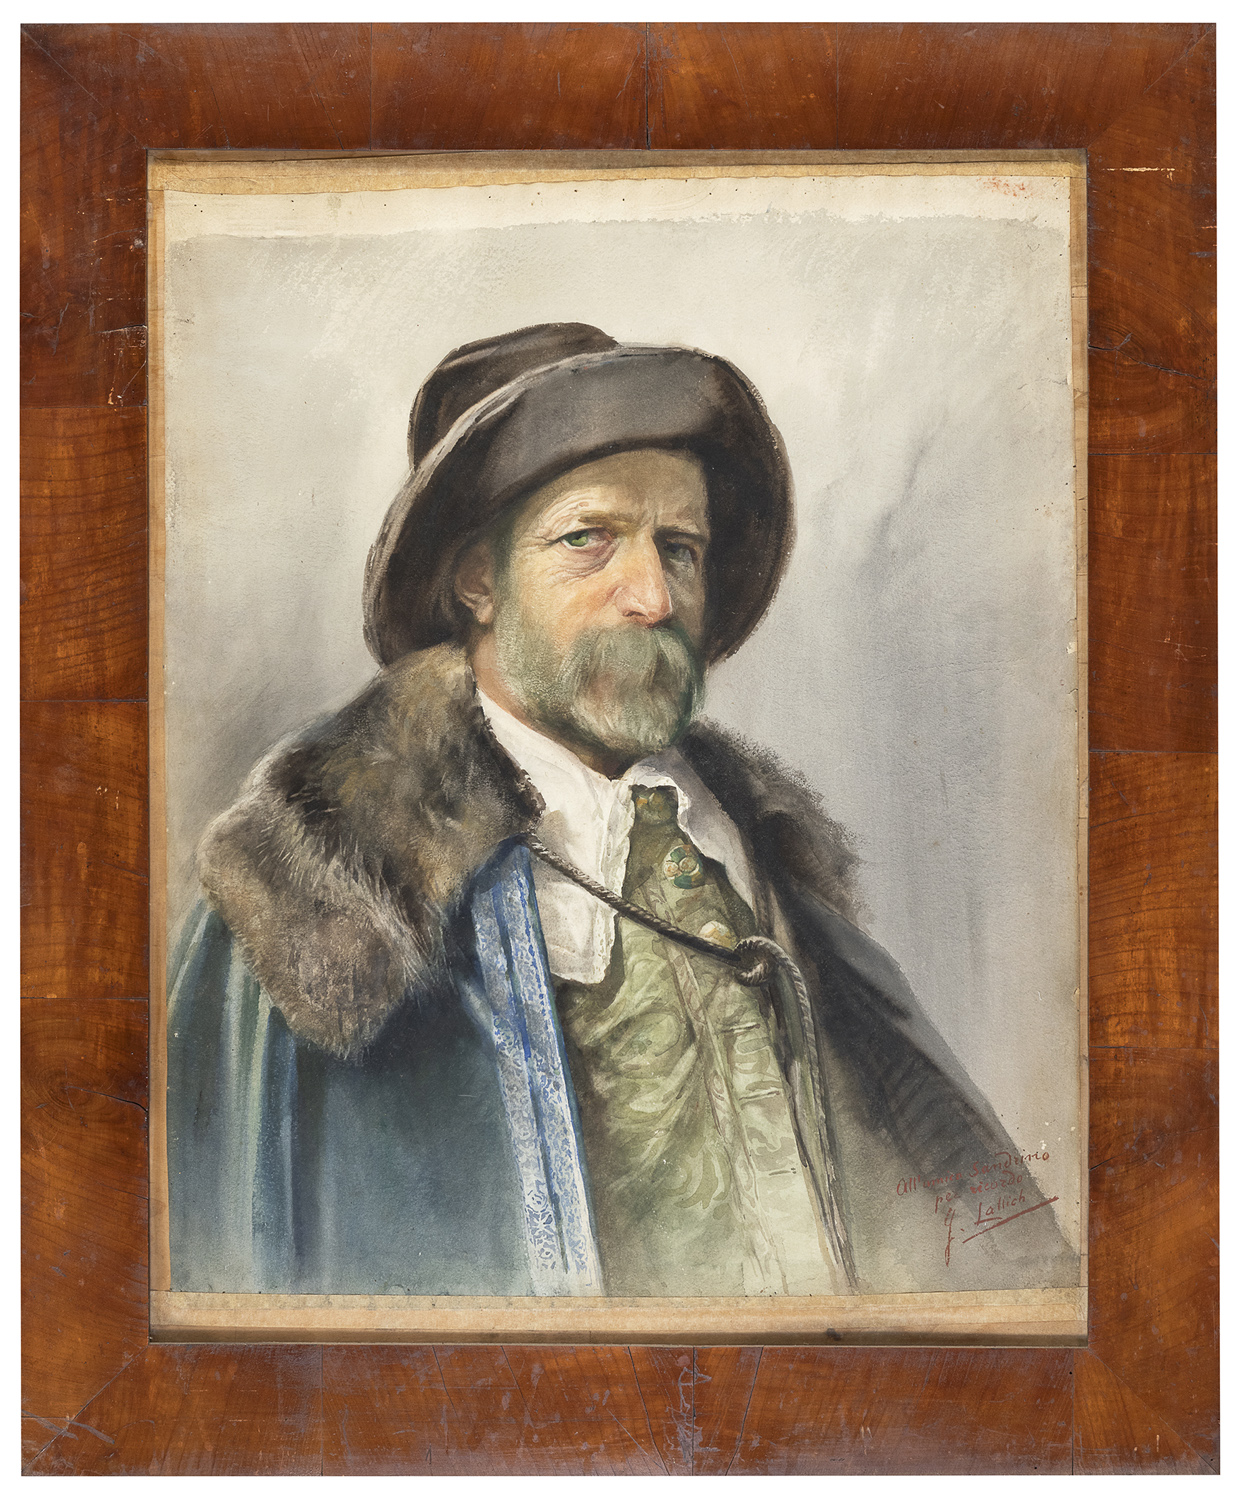 WATERCOLOUR BY GIUSEPPE LALLICH 19TH-20TH CENTURY